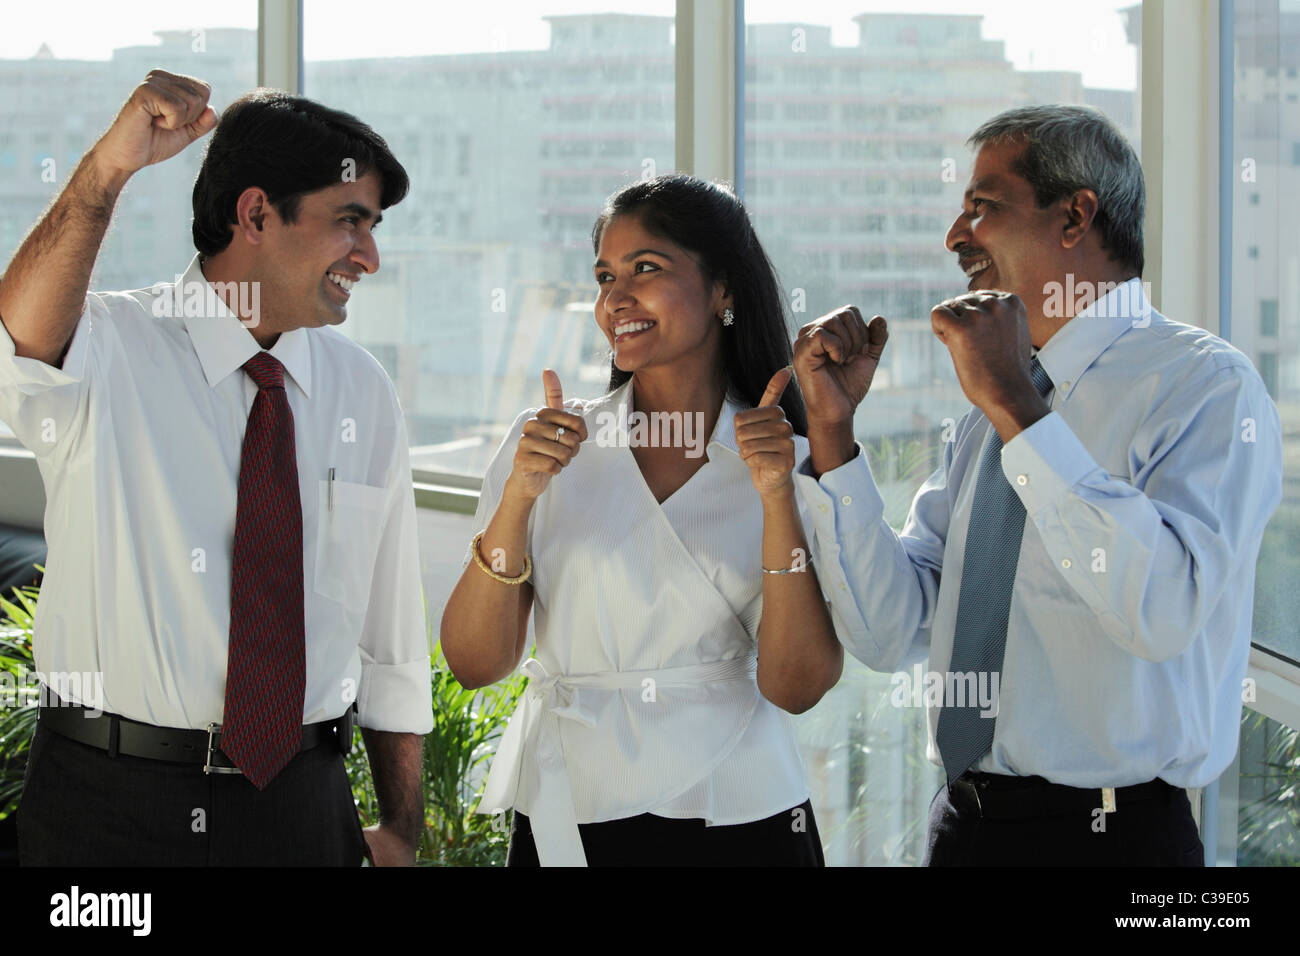 Three Indian people smiling at each other and making hand gestures - Stock Image